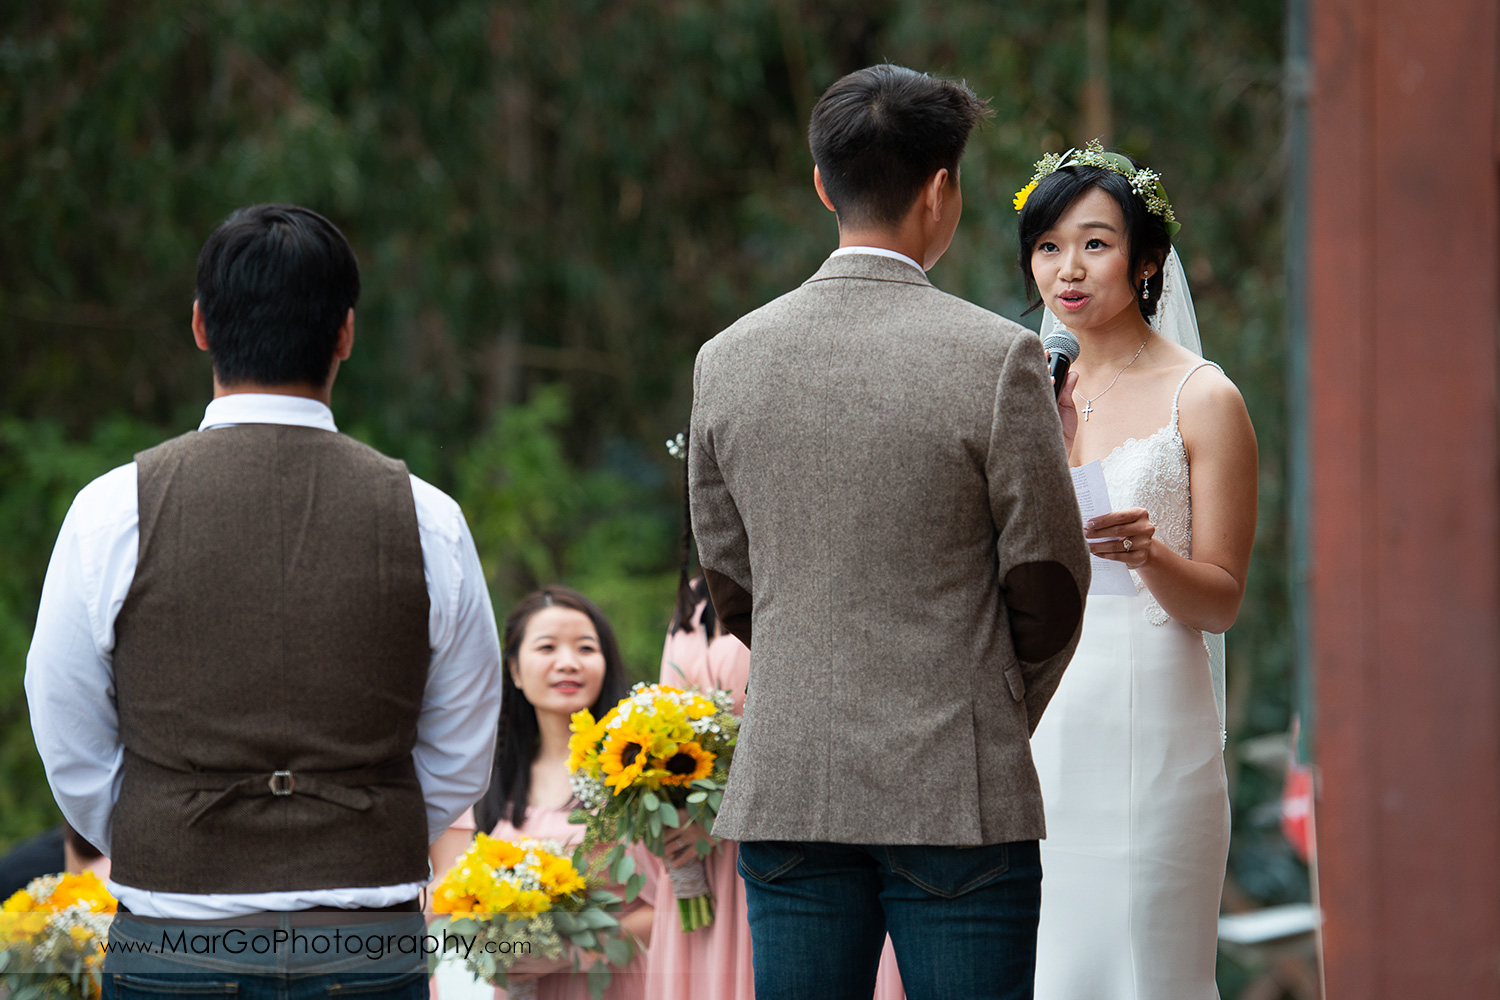 bride reading vows during wedding ceremony at Long Branch Saloon & Farms in Half Moon Bay